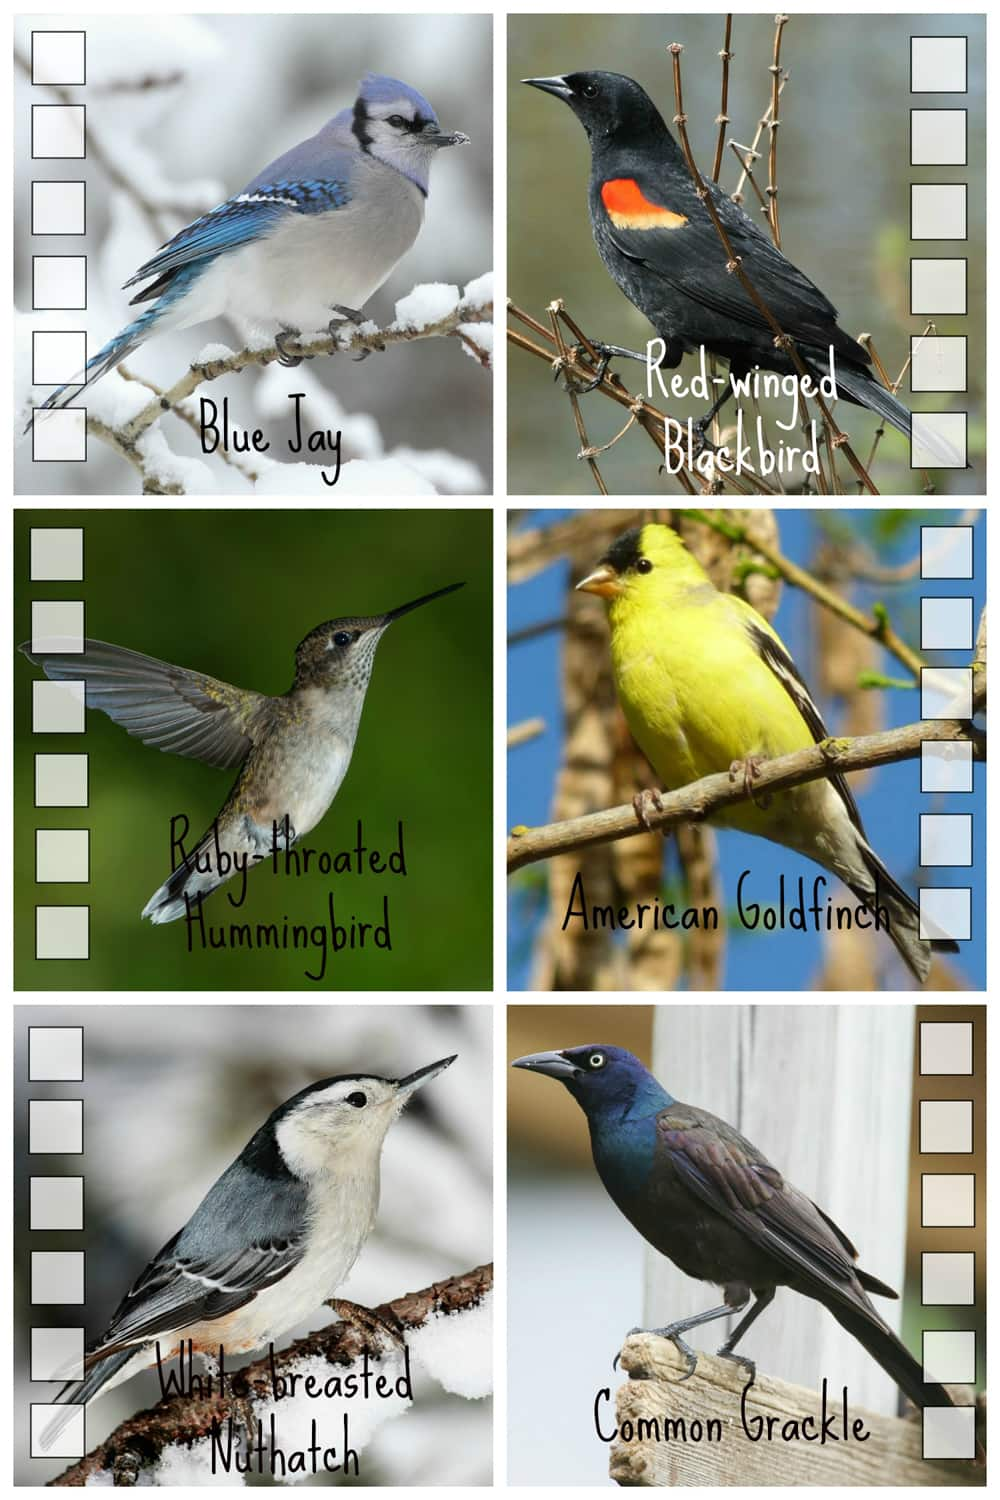 Photos of common birds in Ontario